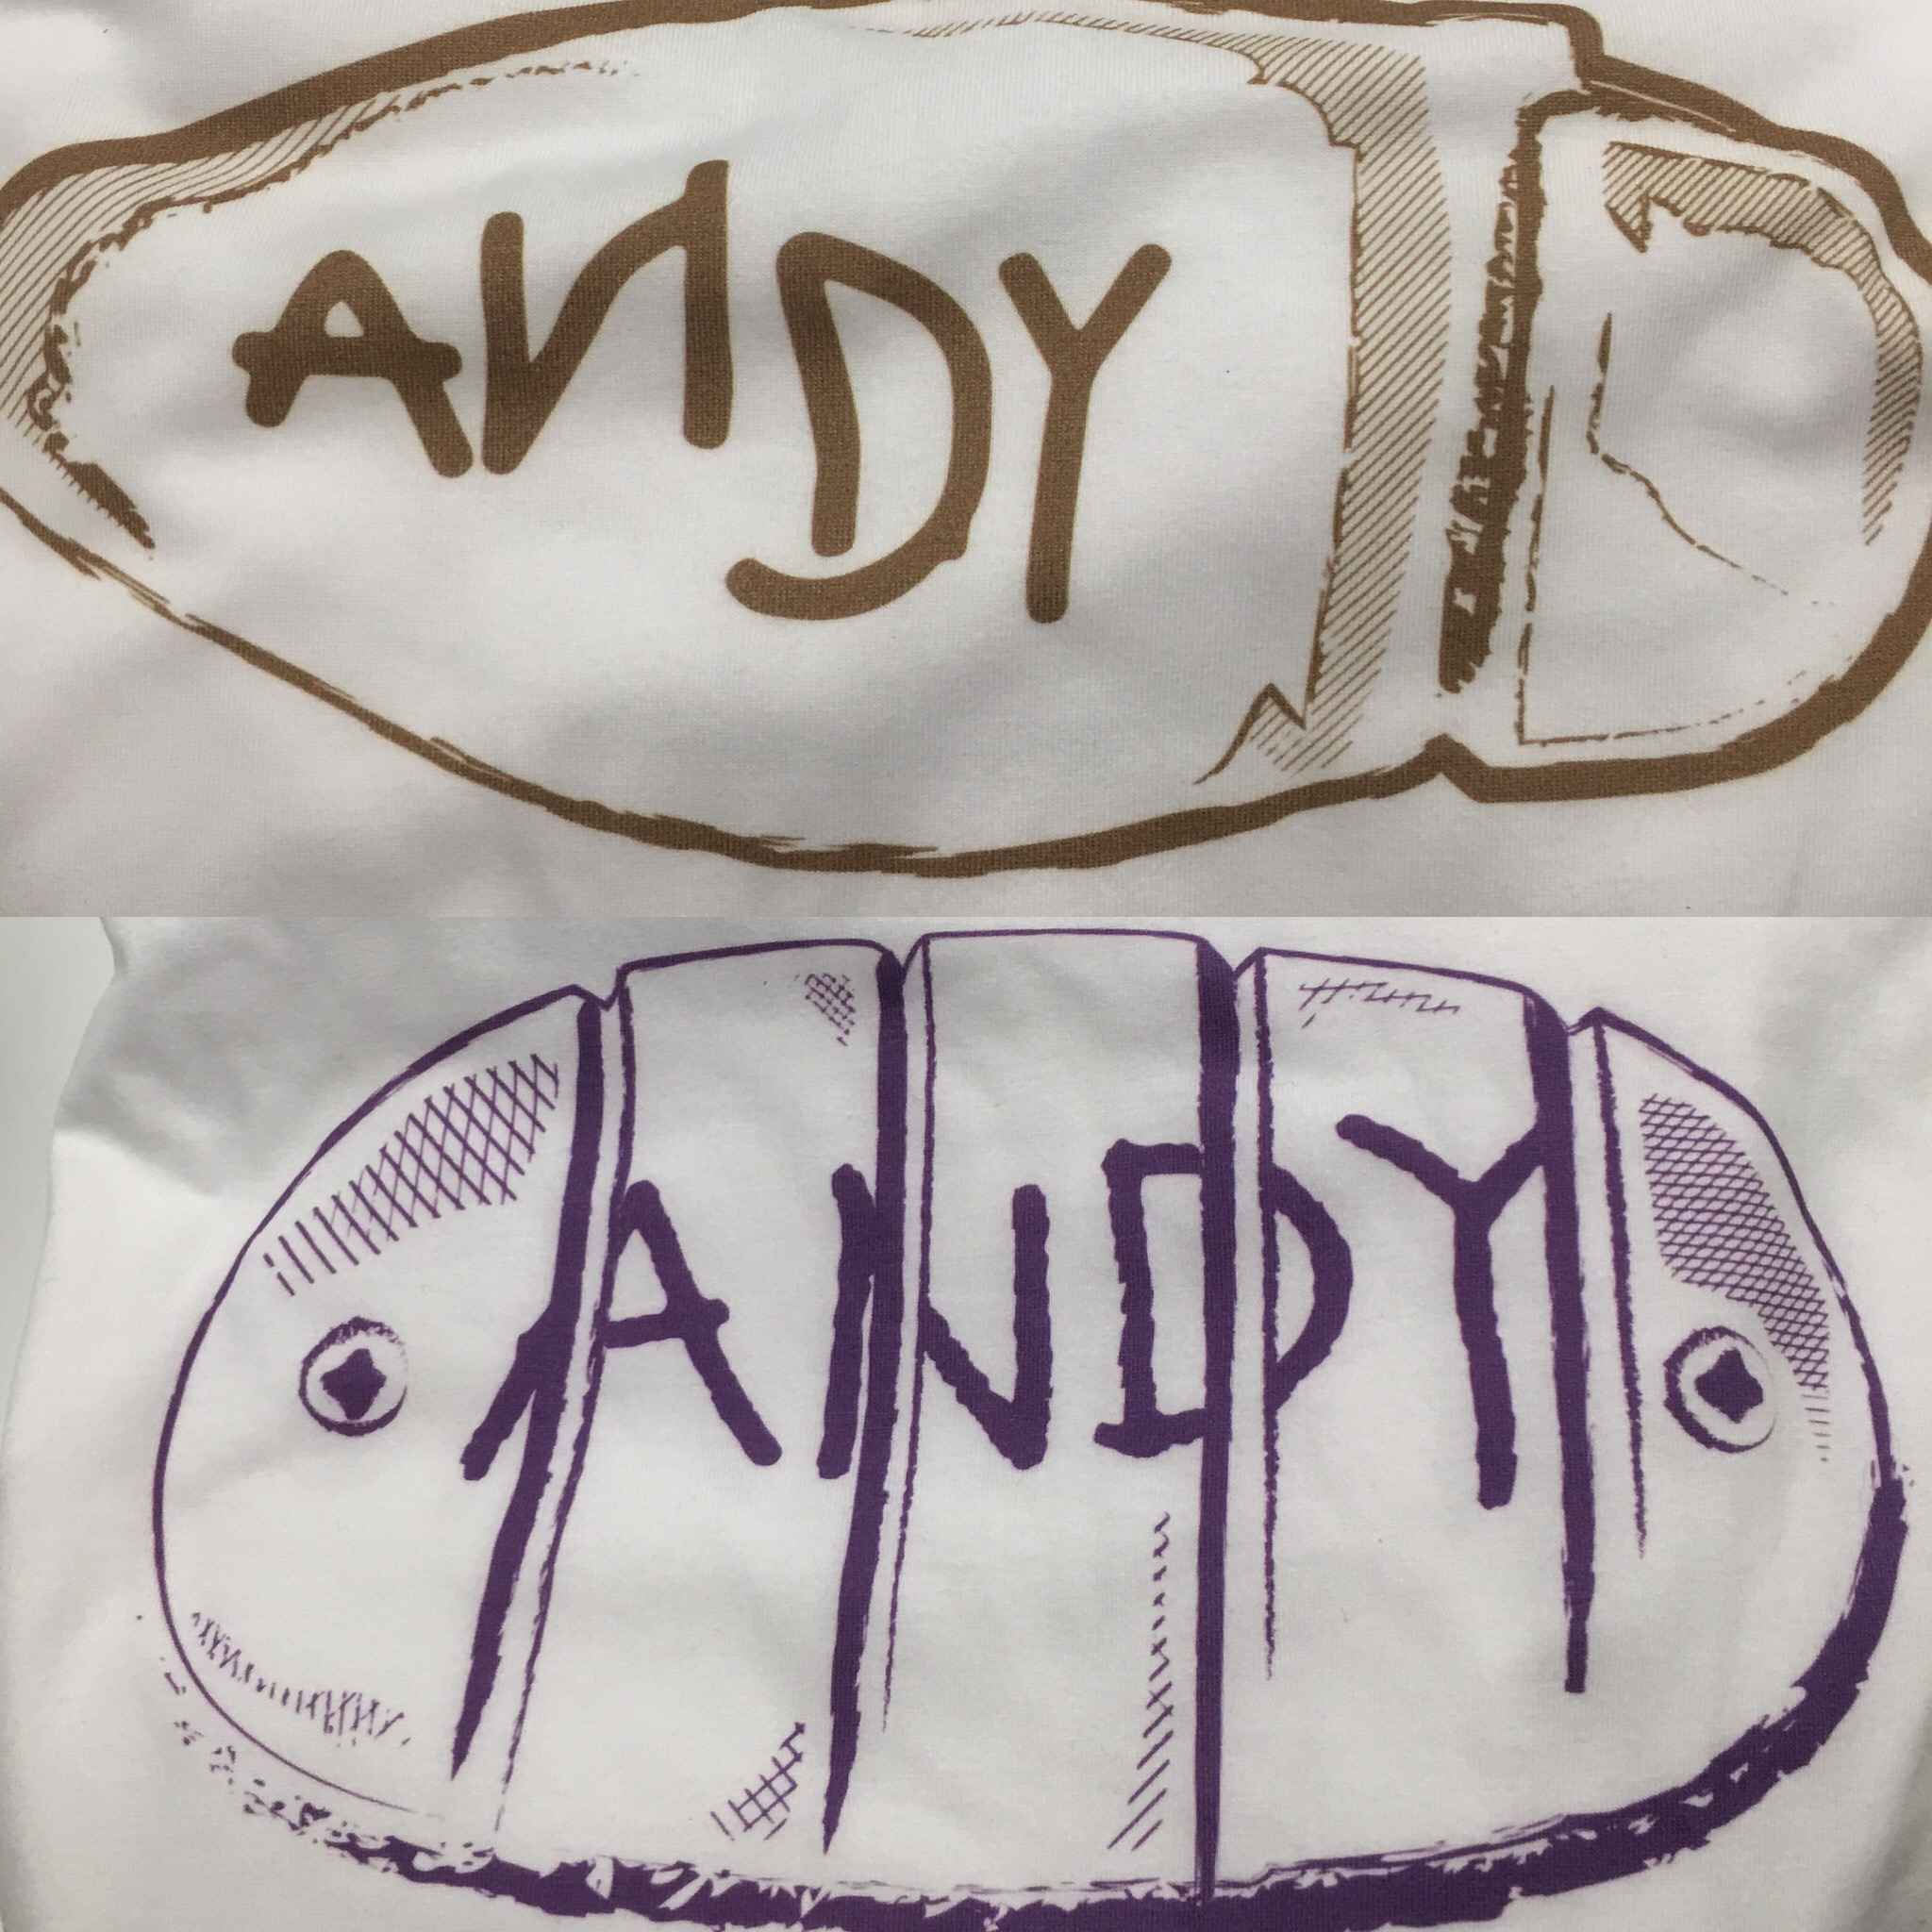 The new Andy's Toys t-shirts are direct to garment. They're also awesome.